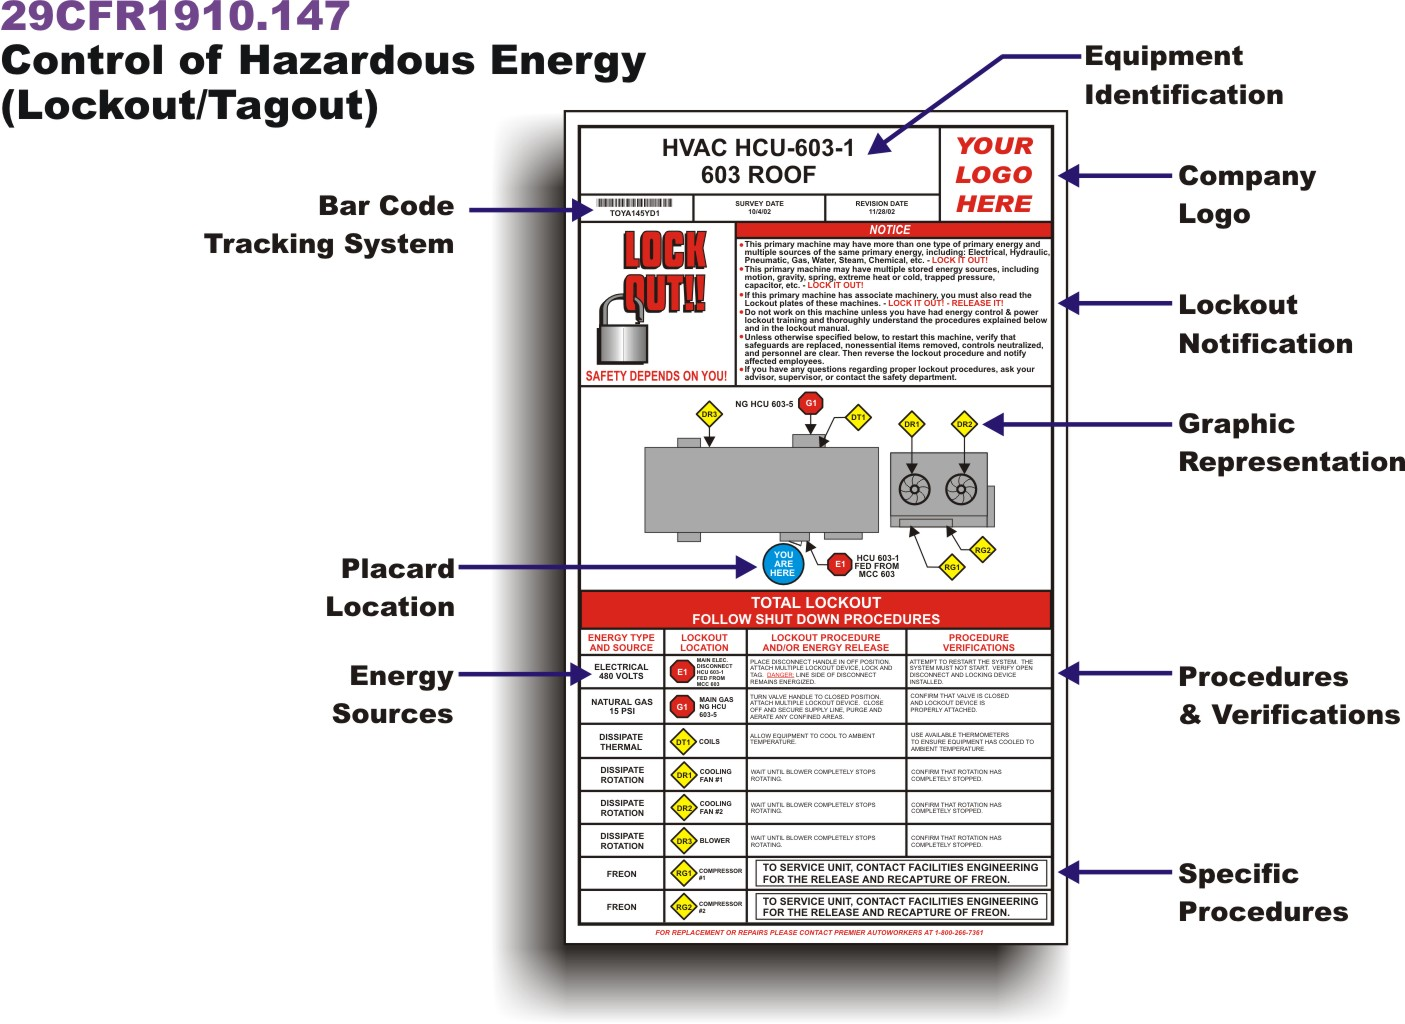 lockout tagout procedure Narco.penantly.co